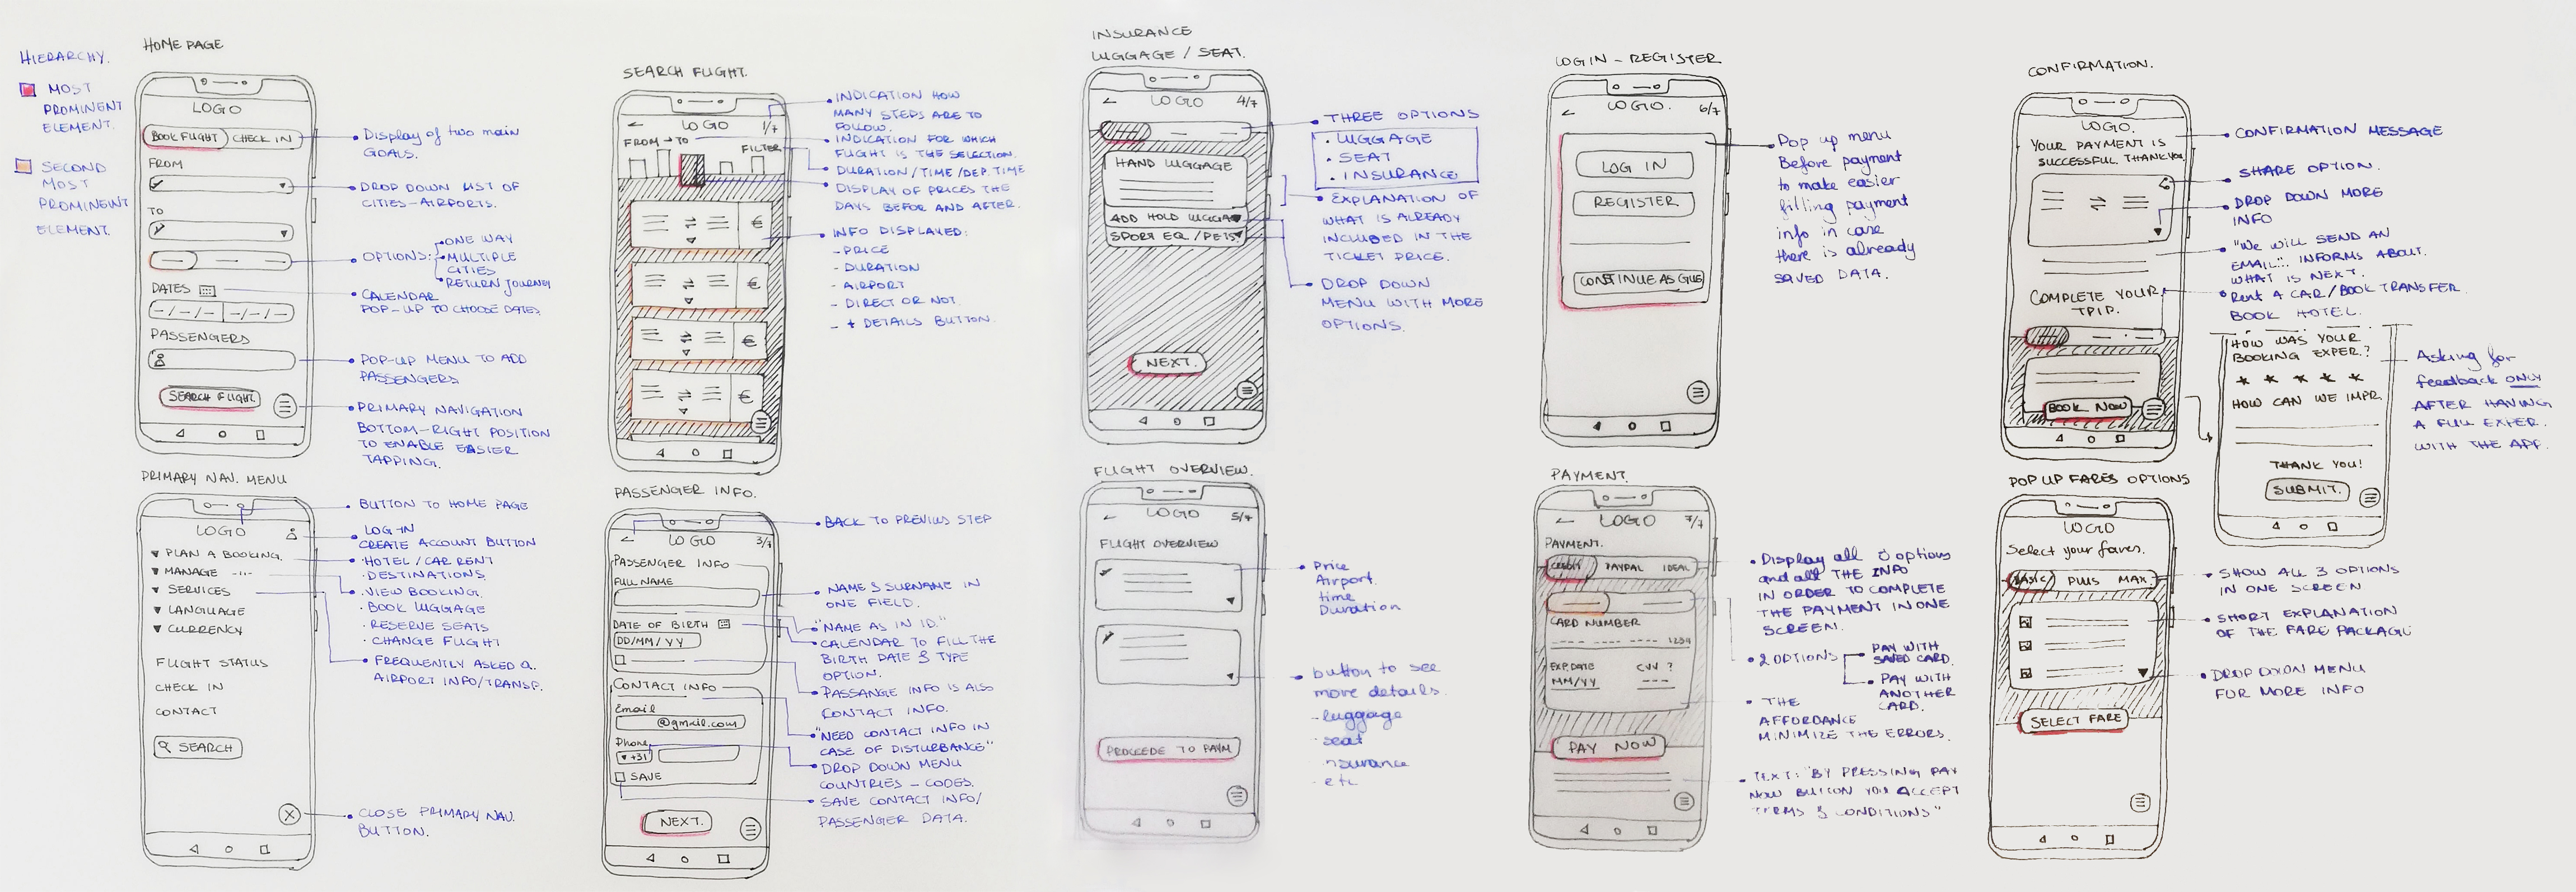 Wireframes Sketches.